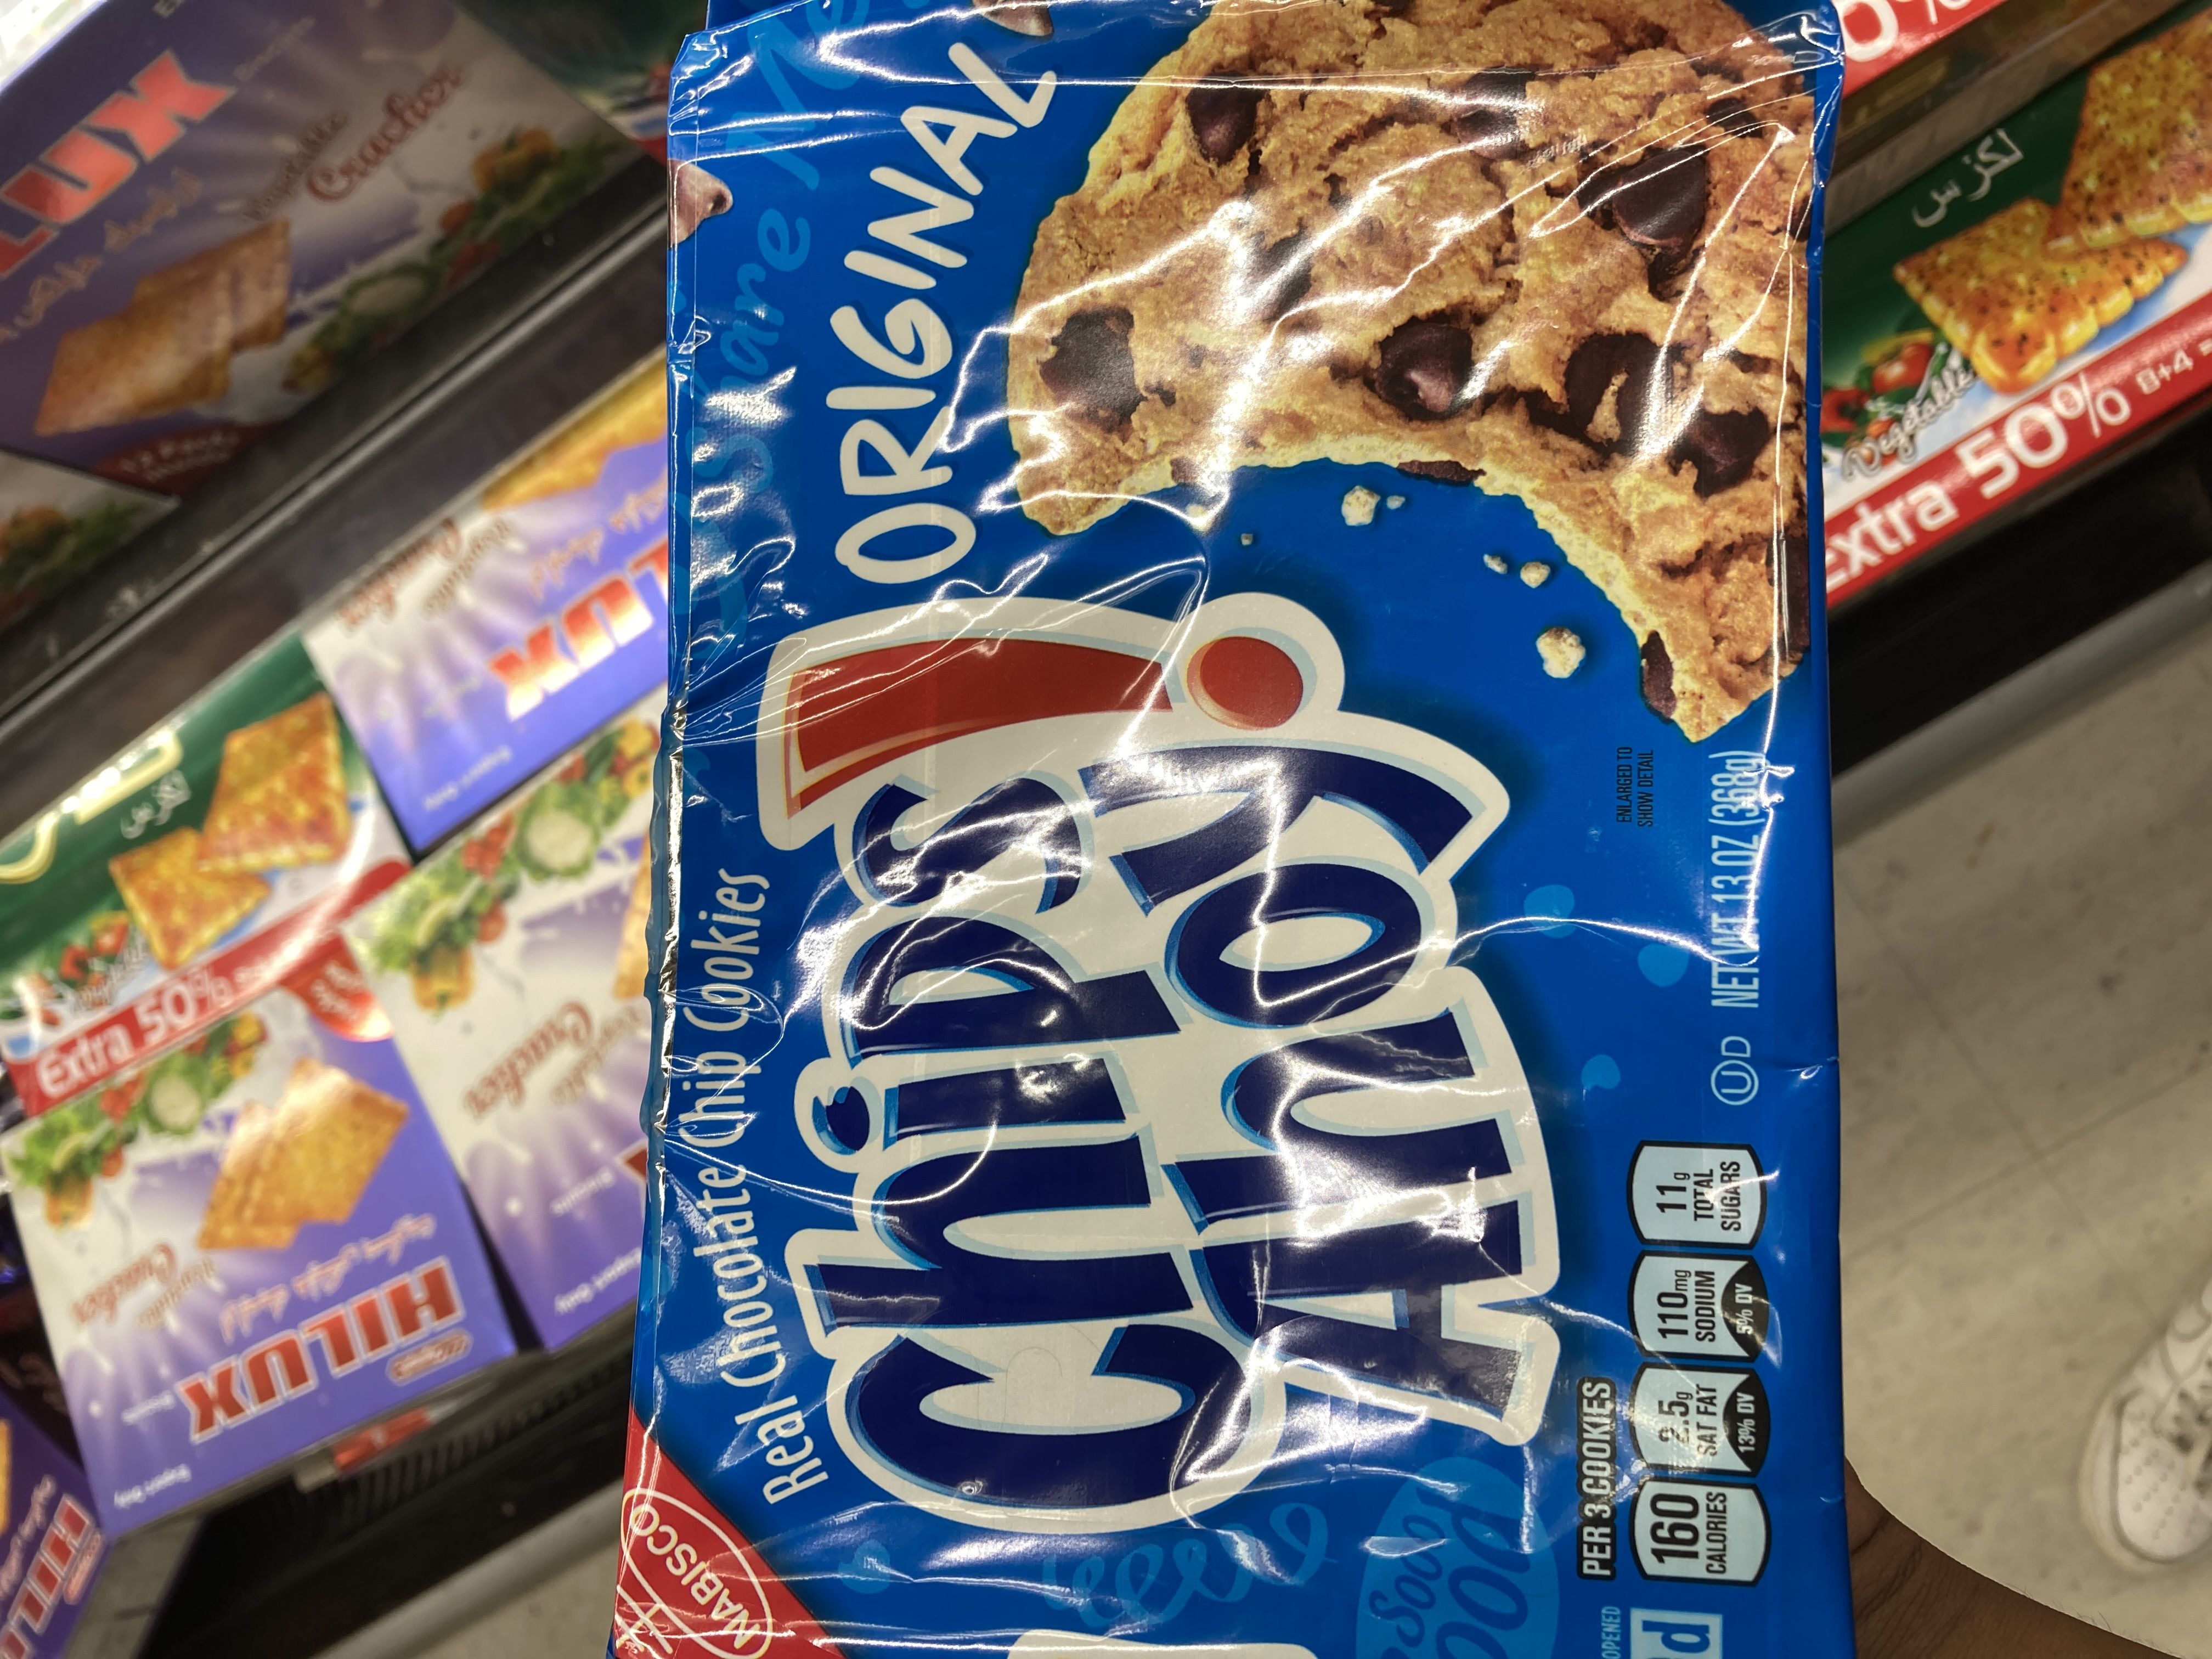 CHIPS AHOY CHOCOLATE CHIP COOKIES ORIGINAL